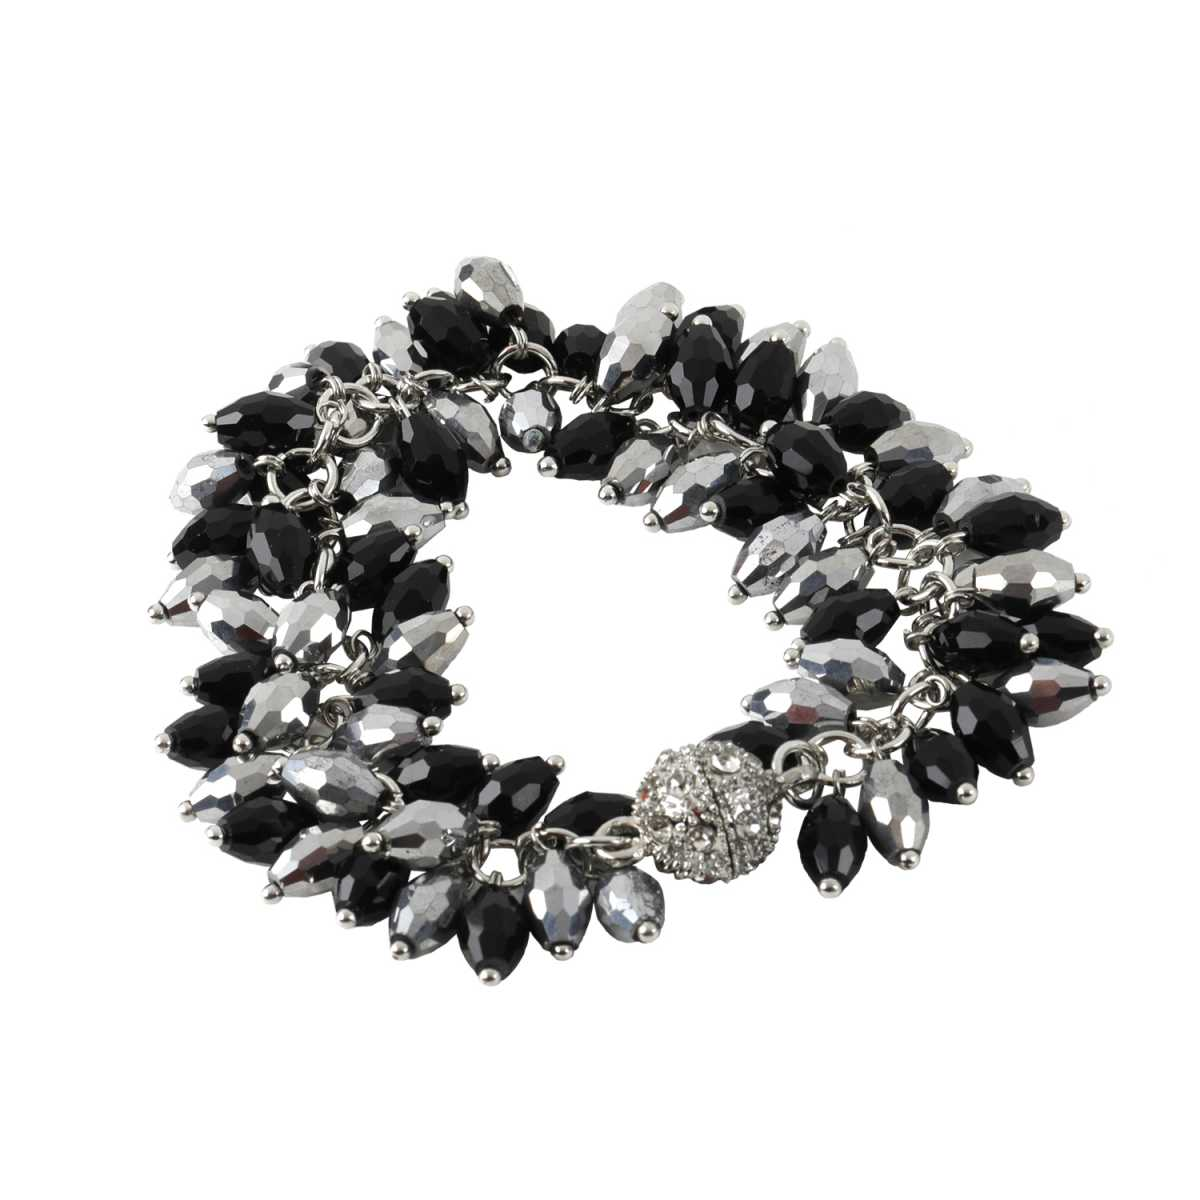 Black And Silver Pearl Diamond Bracelet For Girls And Women